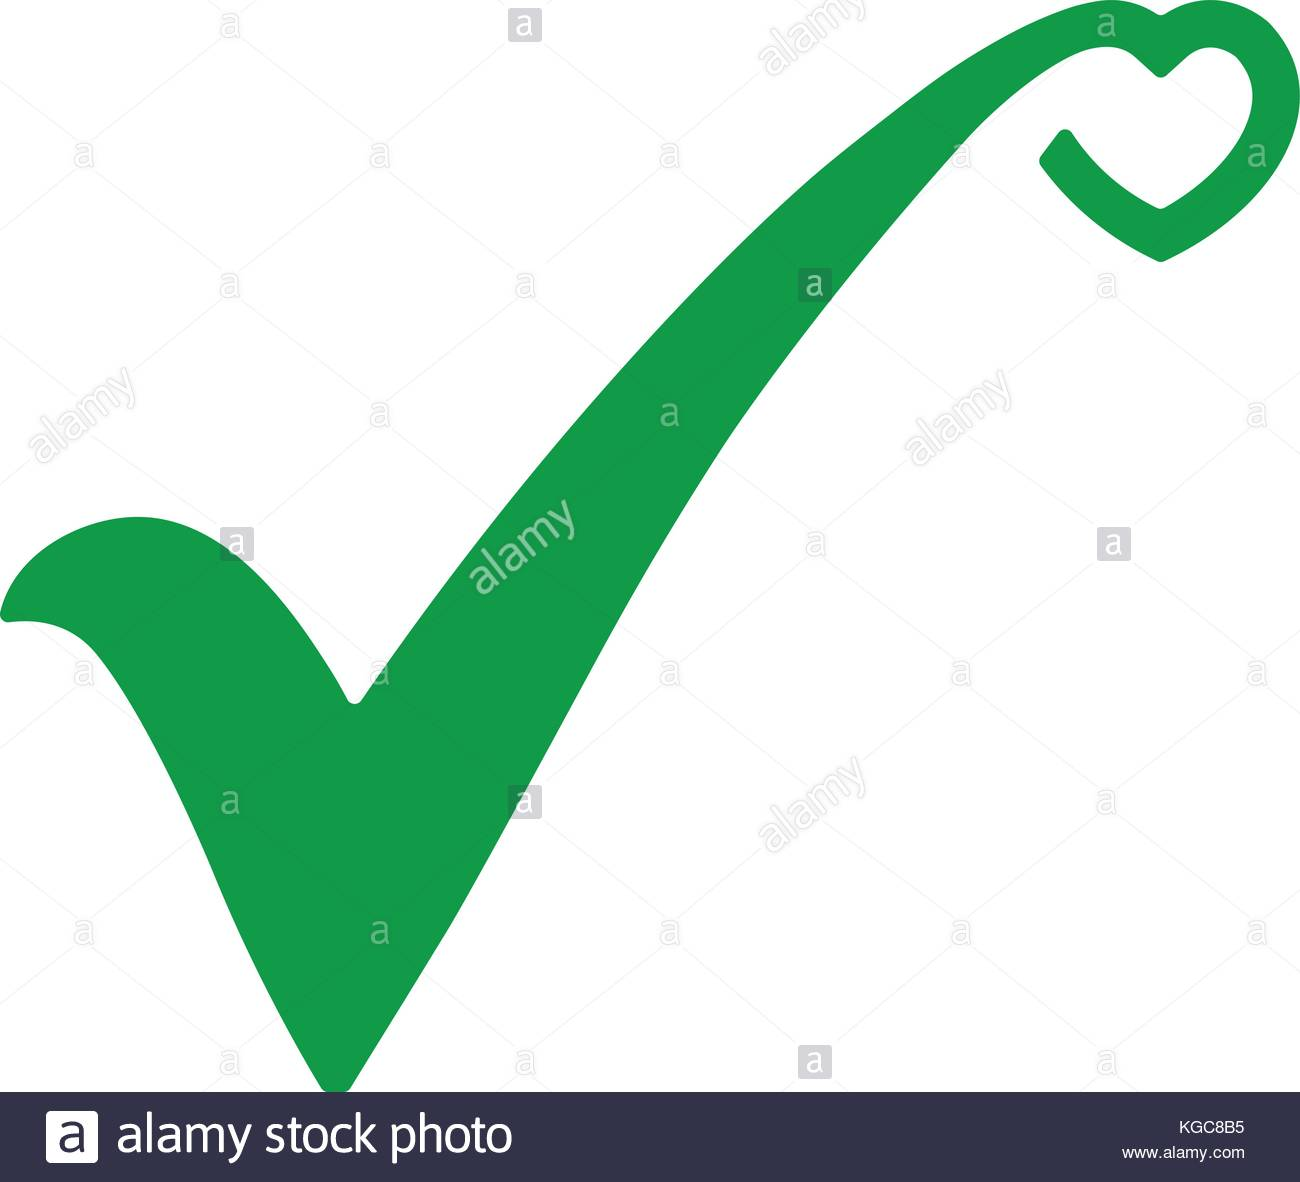 1300x1182 Green Tick Check Mark Stock Photos Amp Green Tick Check Mark